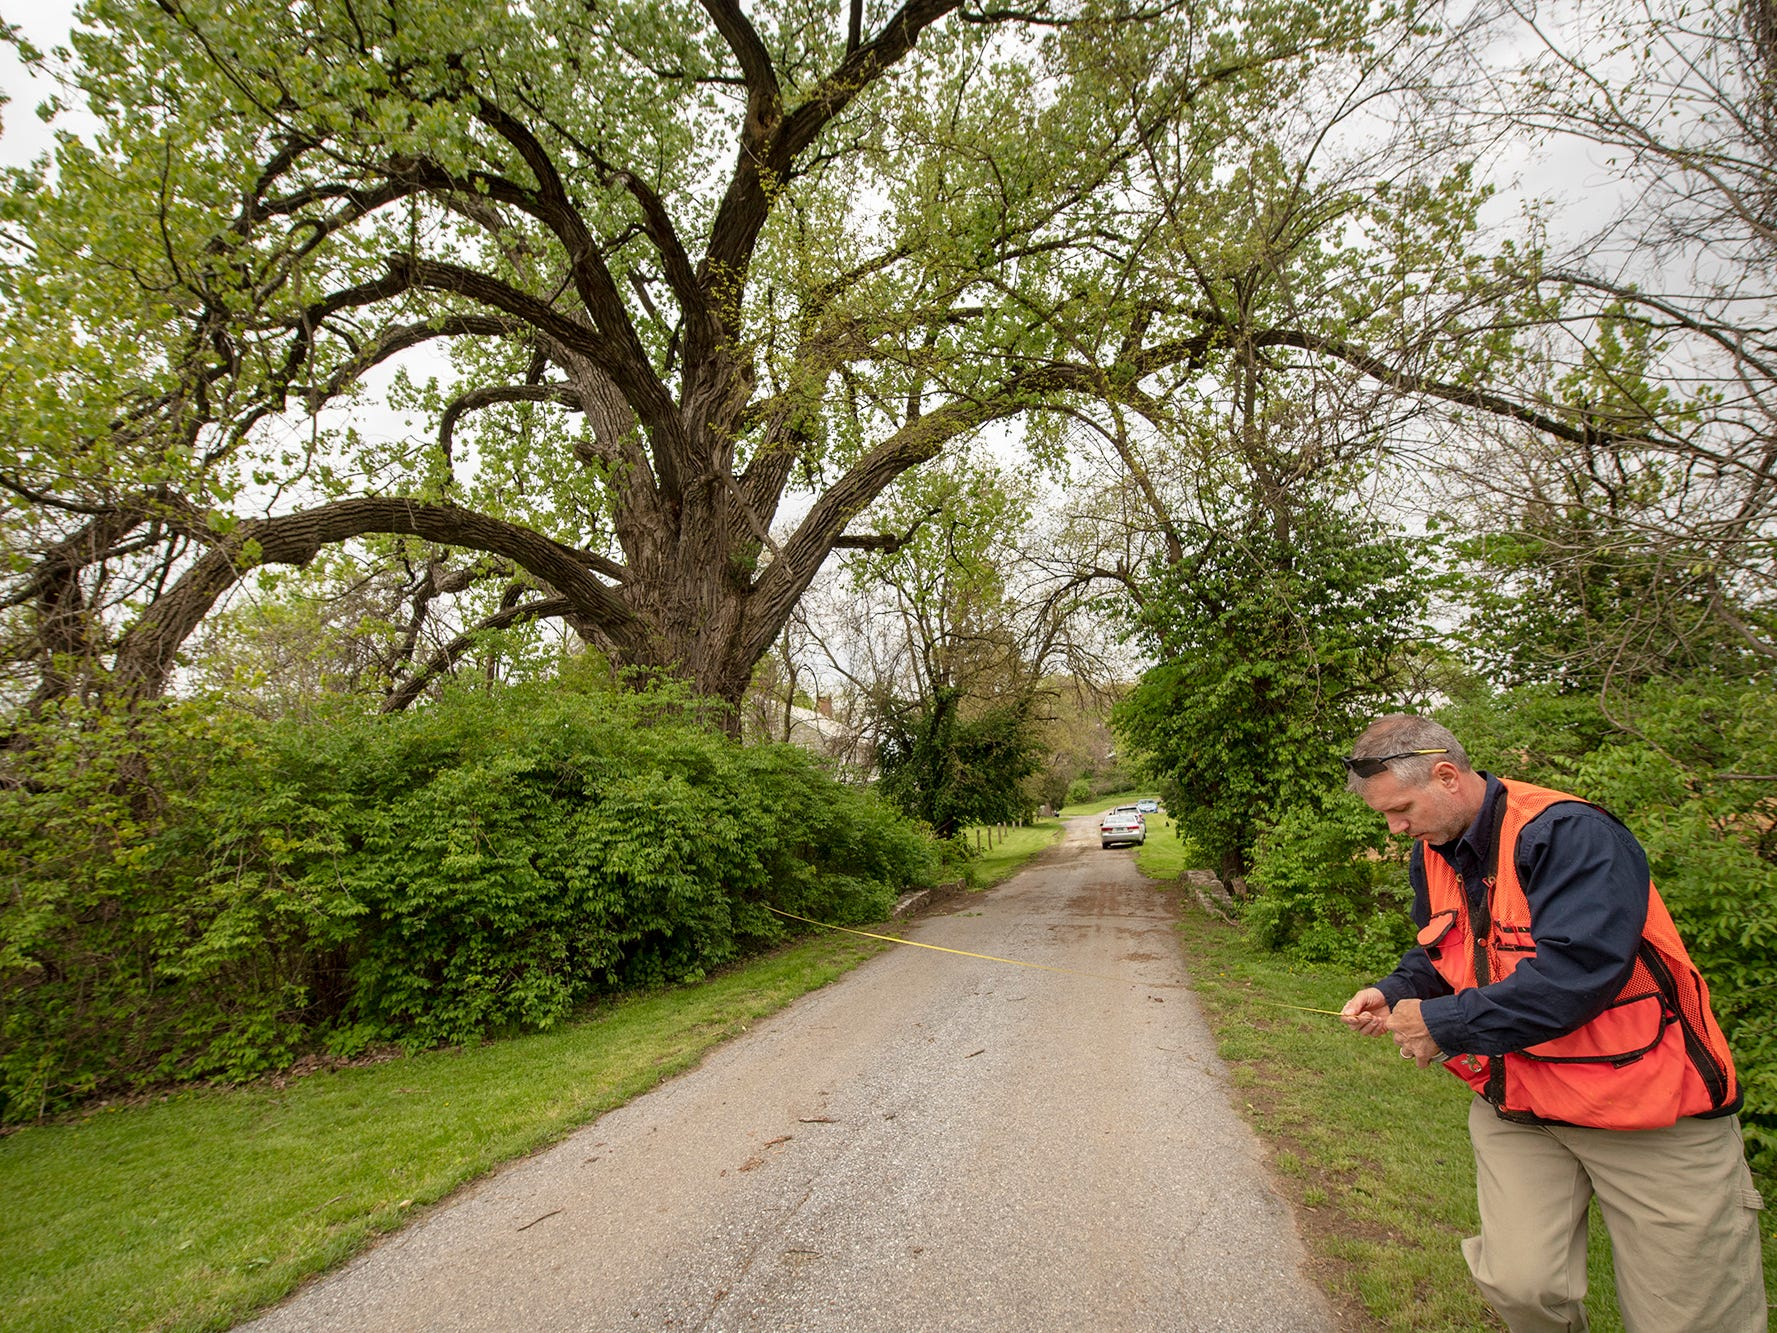 Matt Kern, a forester with the state department of conservation and natural resources, stands at the base of the largest tree in York County and one of largest Cottonwood trees in the state at Magnesita Refractory Co. in West Manchester Township.